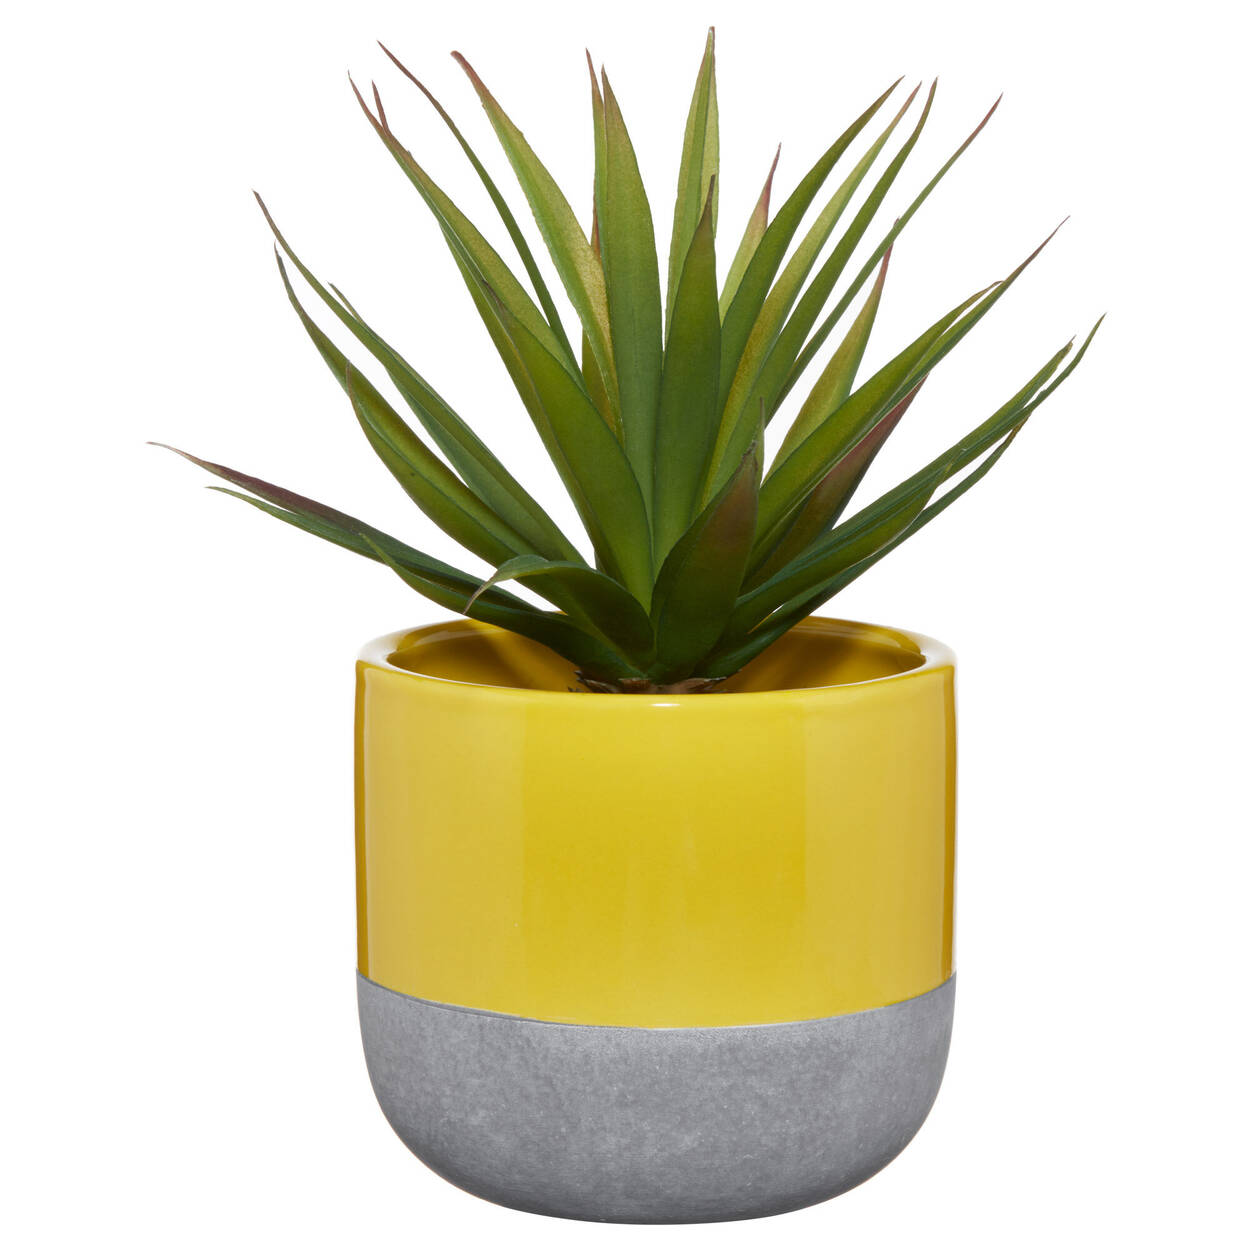 Ceramic Potted Grass